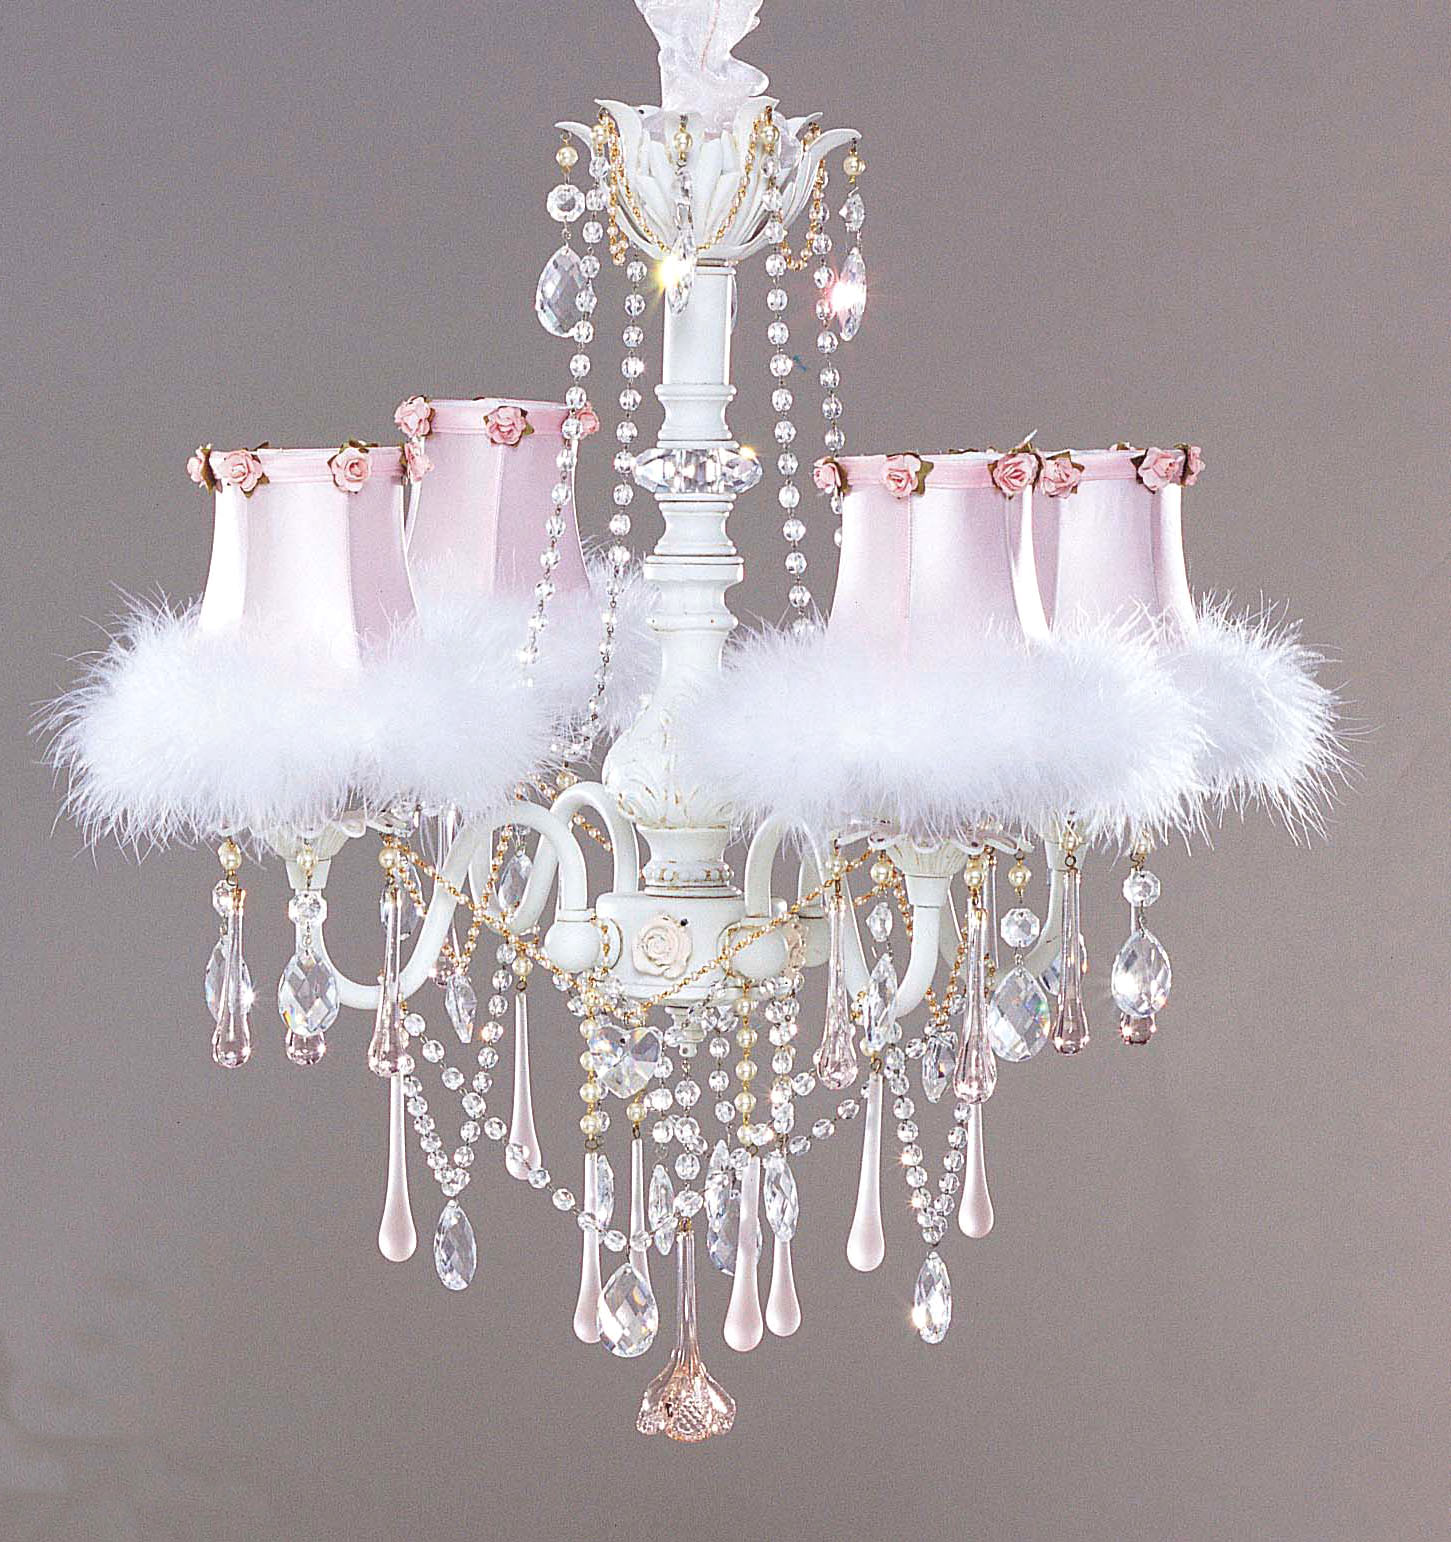 Creative lighting option shabby chic chandelier interior lighting optionsinterior lighting - Lights and chandeliers ...